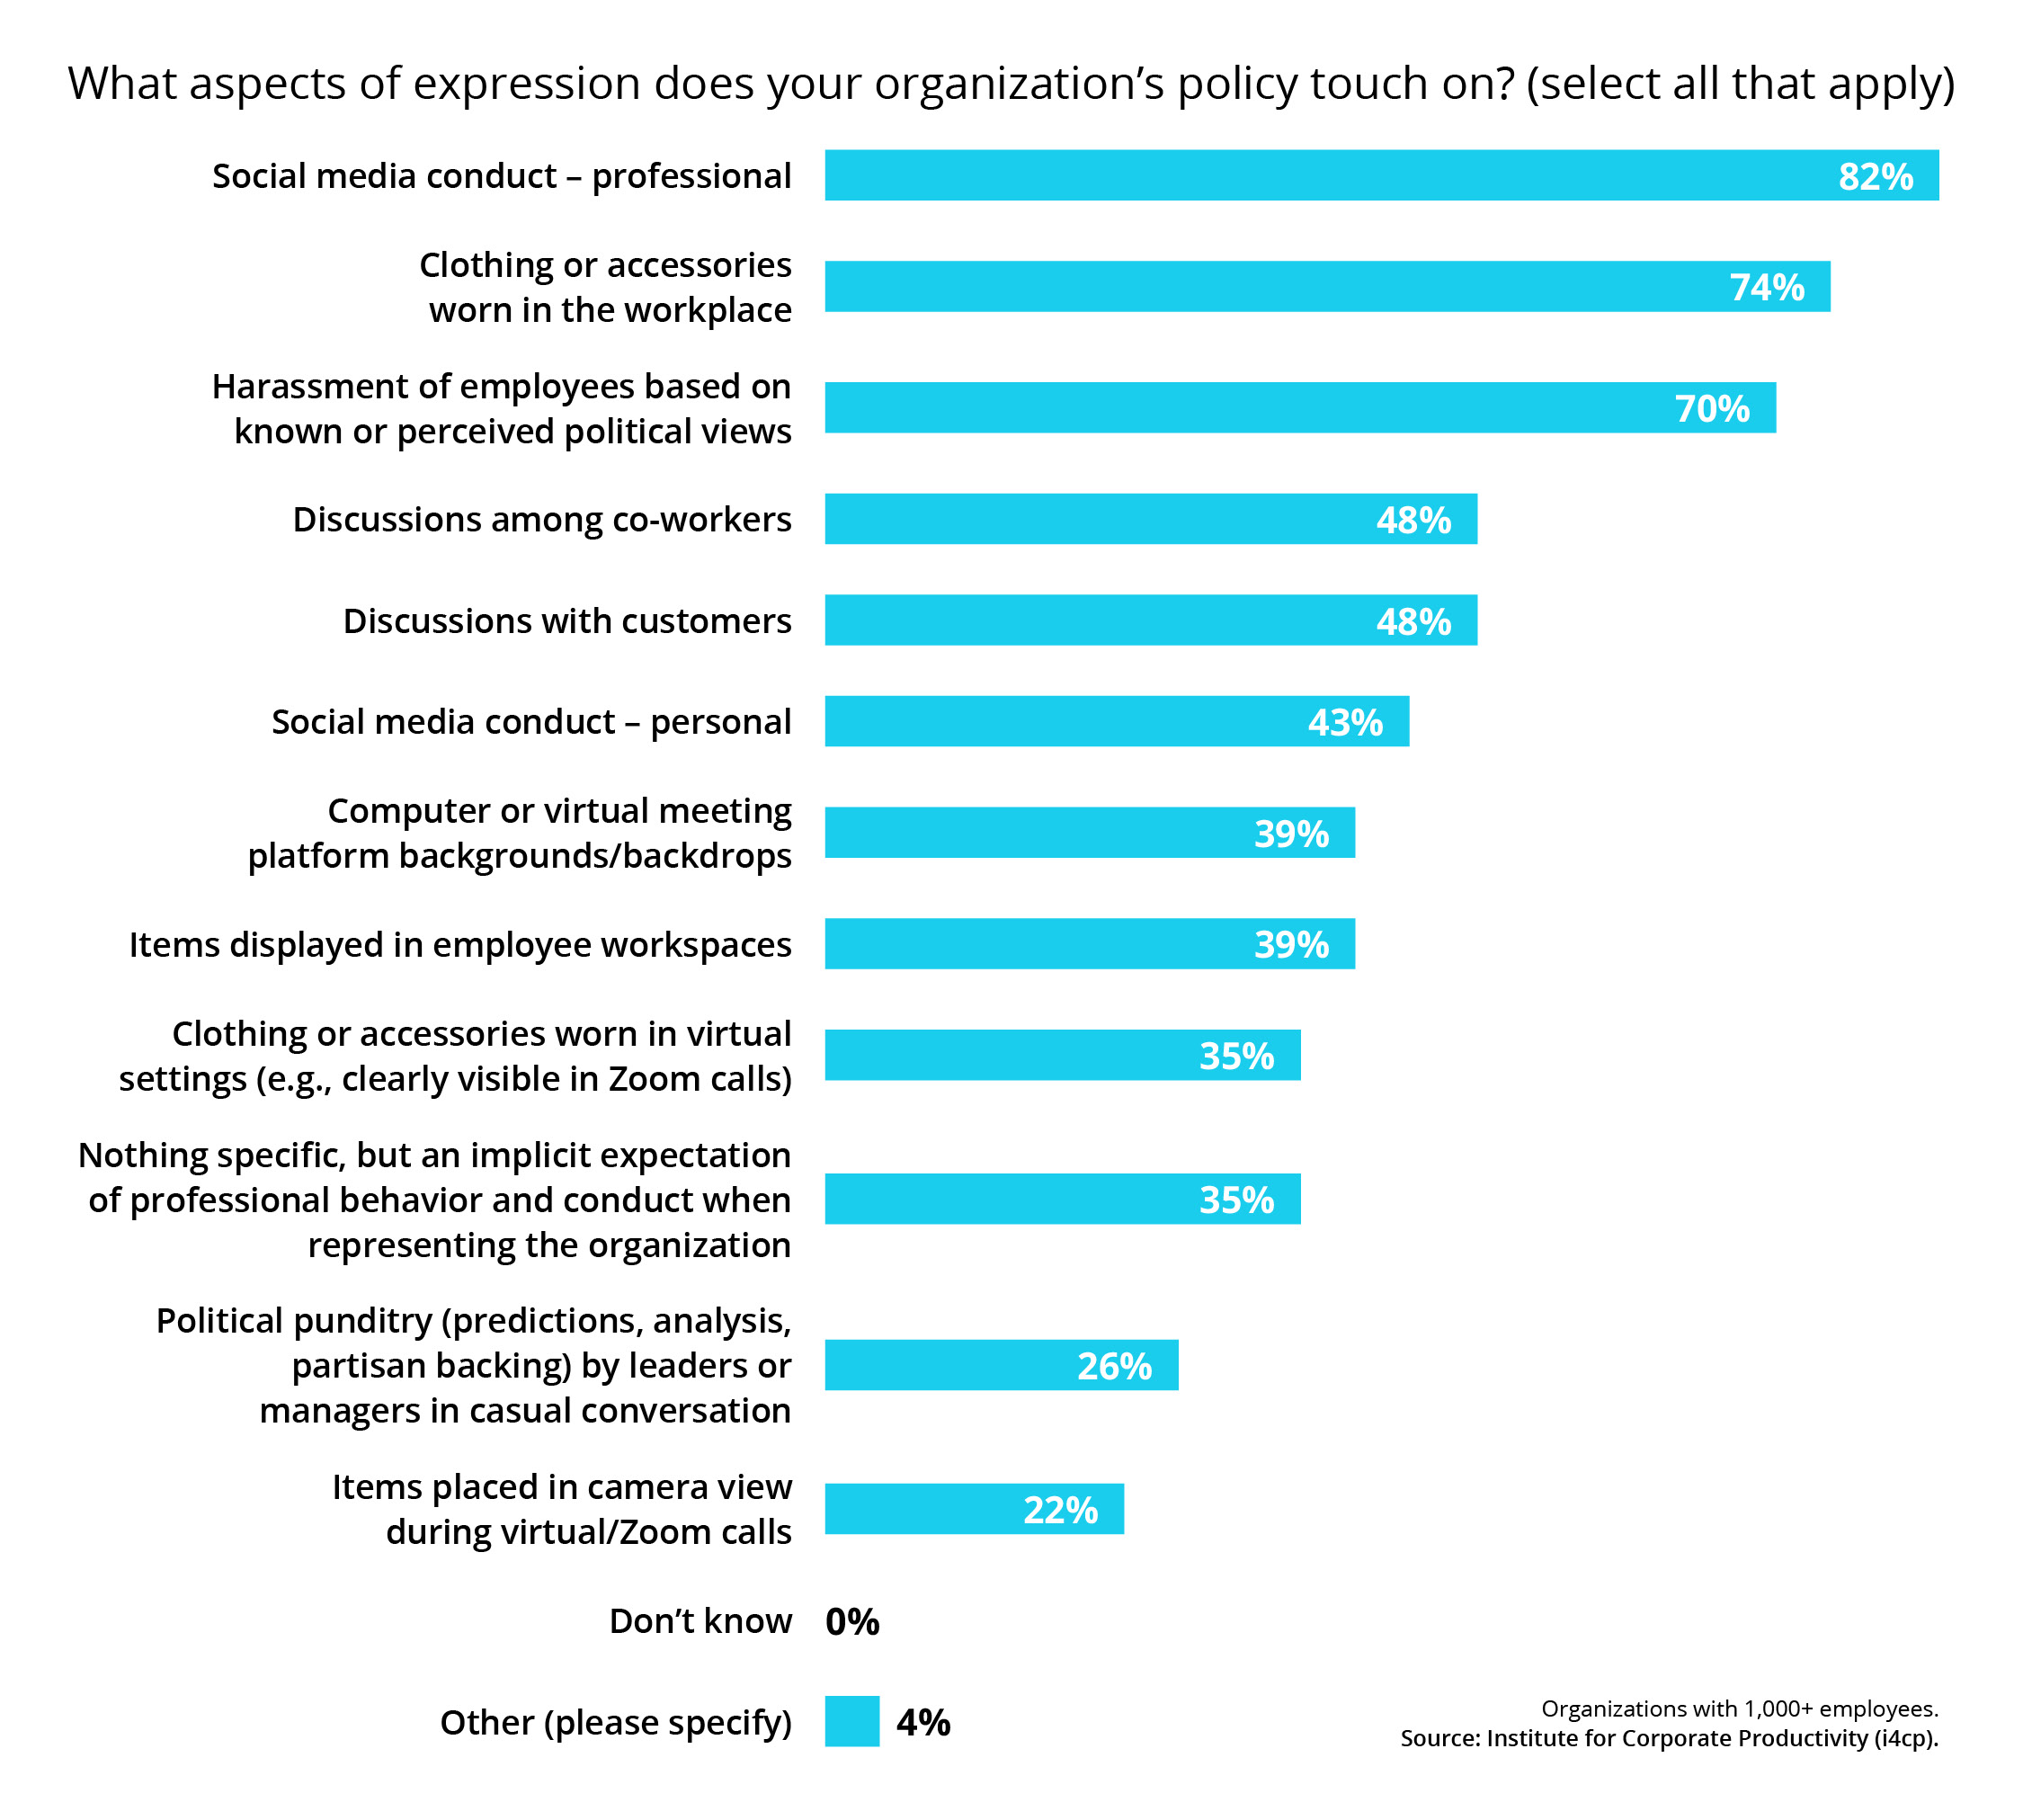 Aspects of Expression does your organization policy touch on